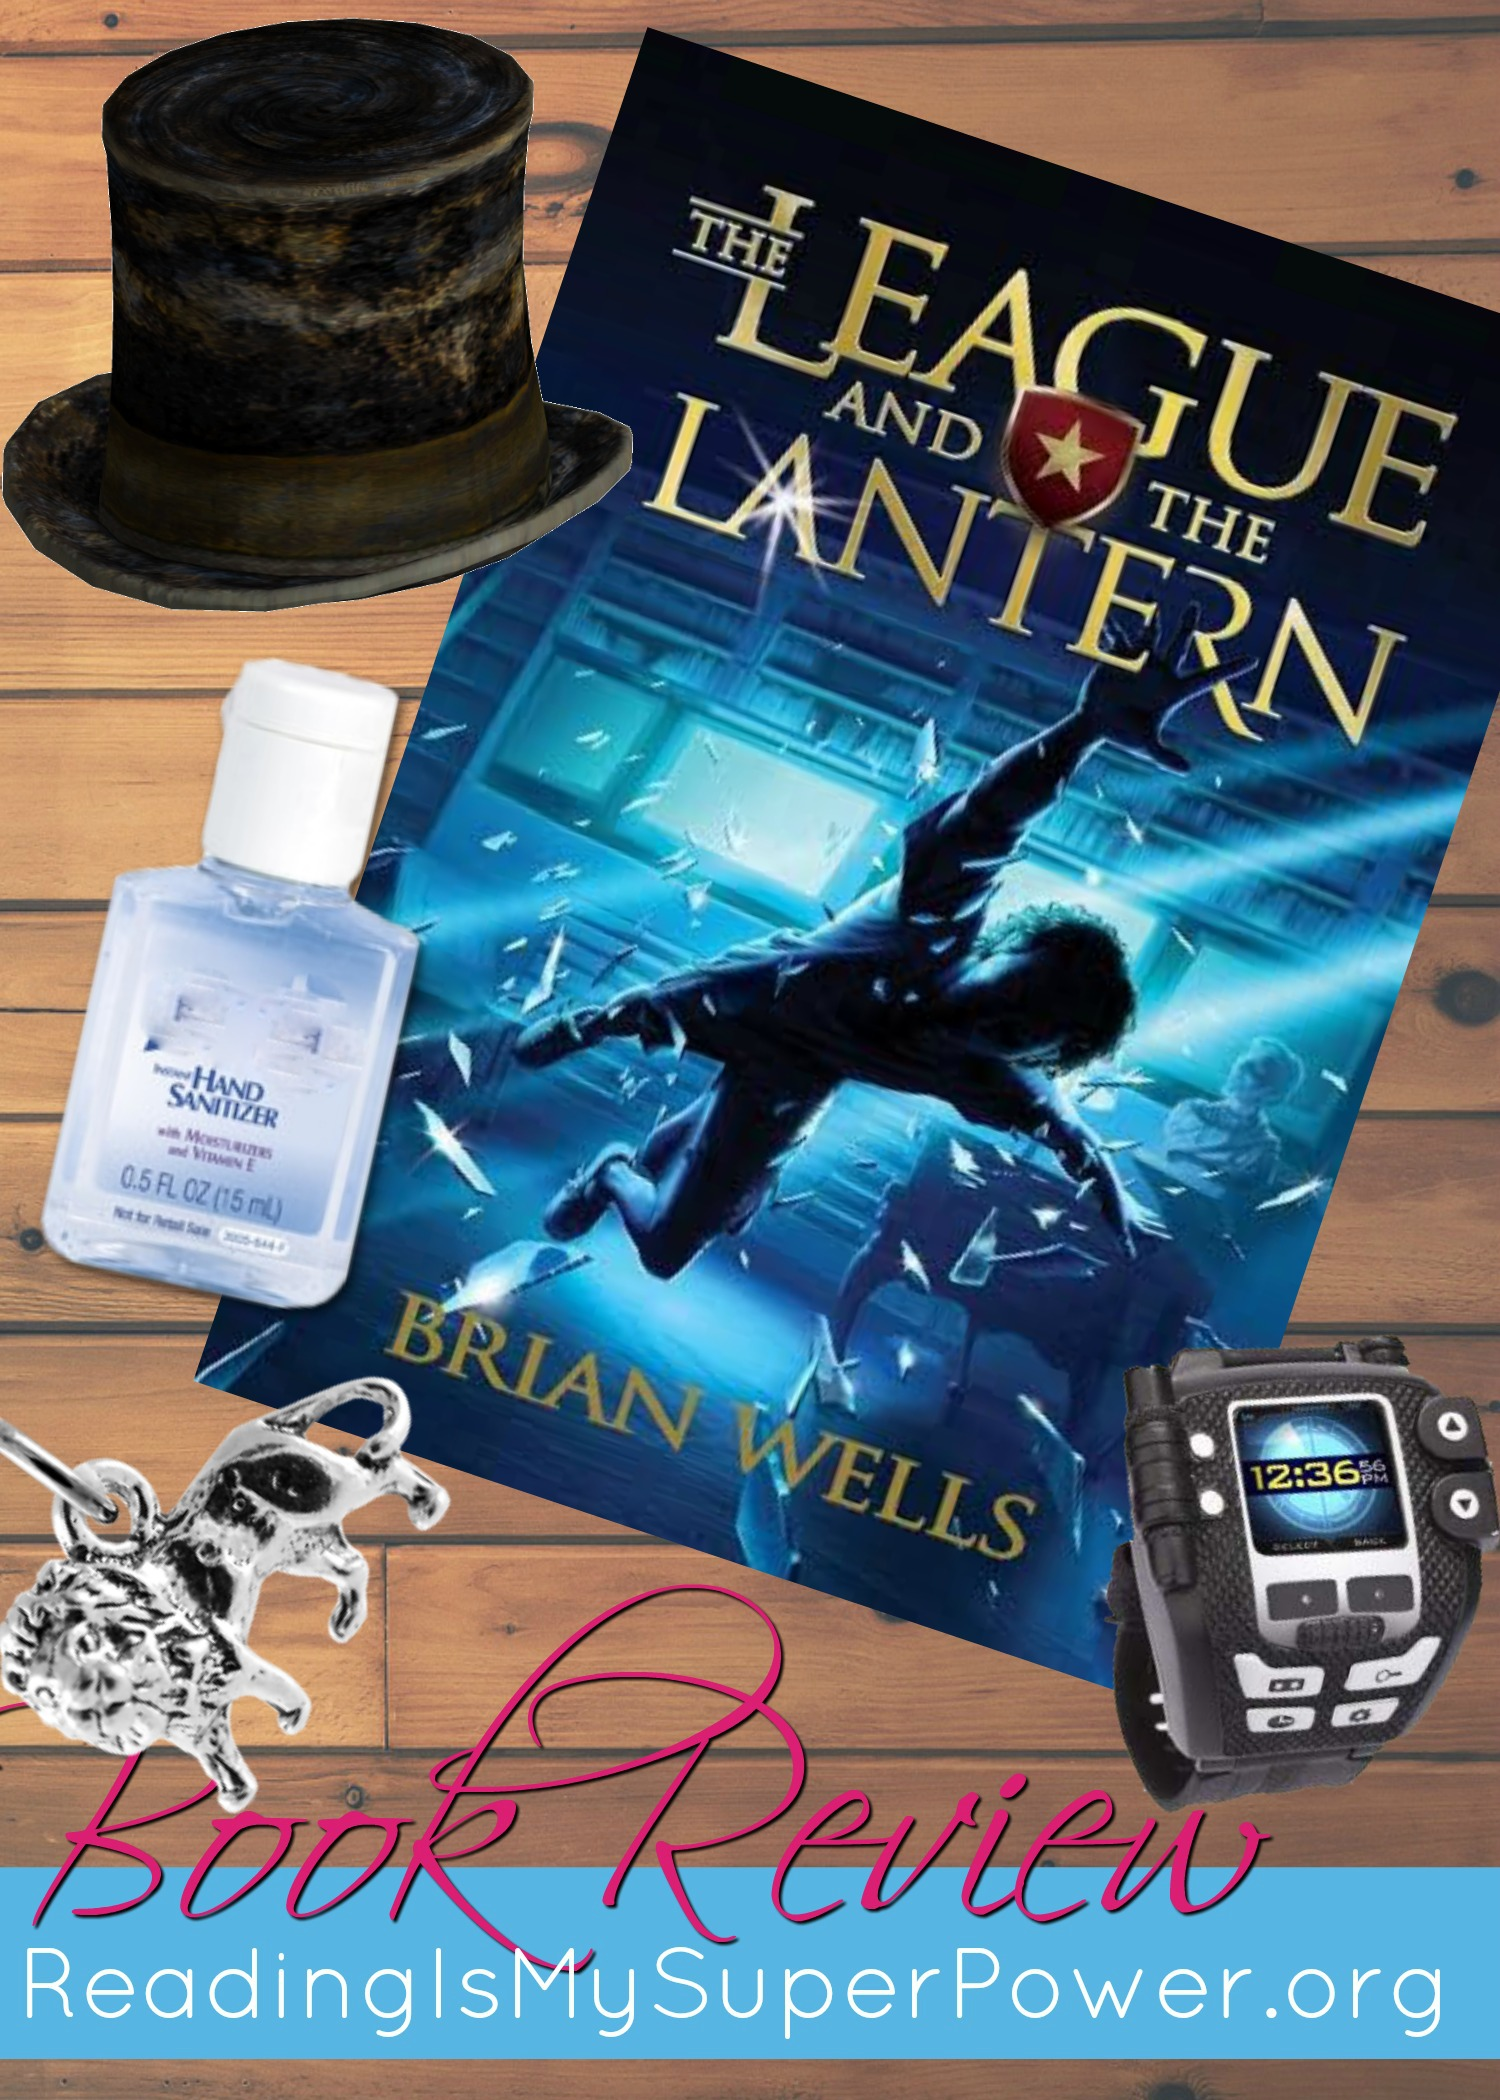 Book Review (and A Giveaway!): The League And The Lantern By Brian